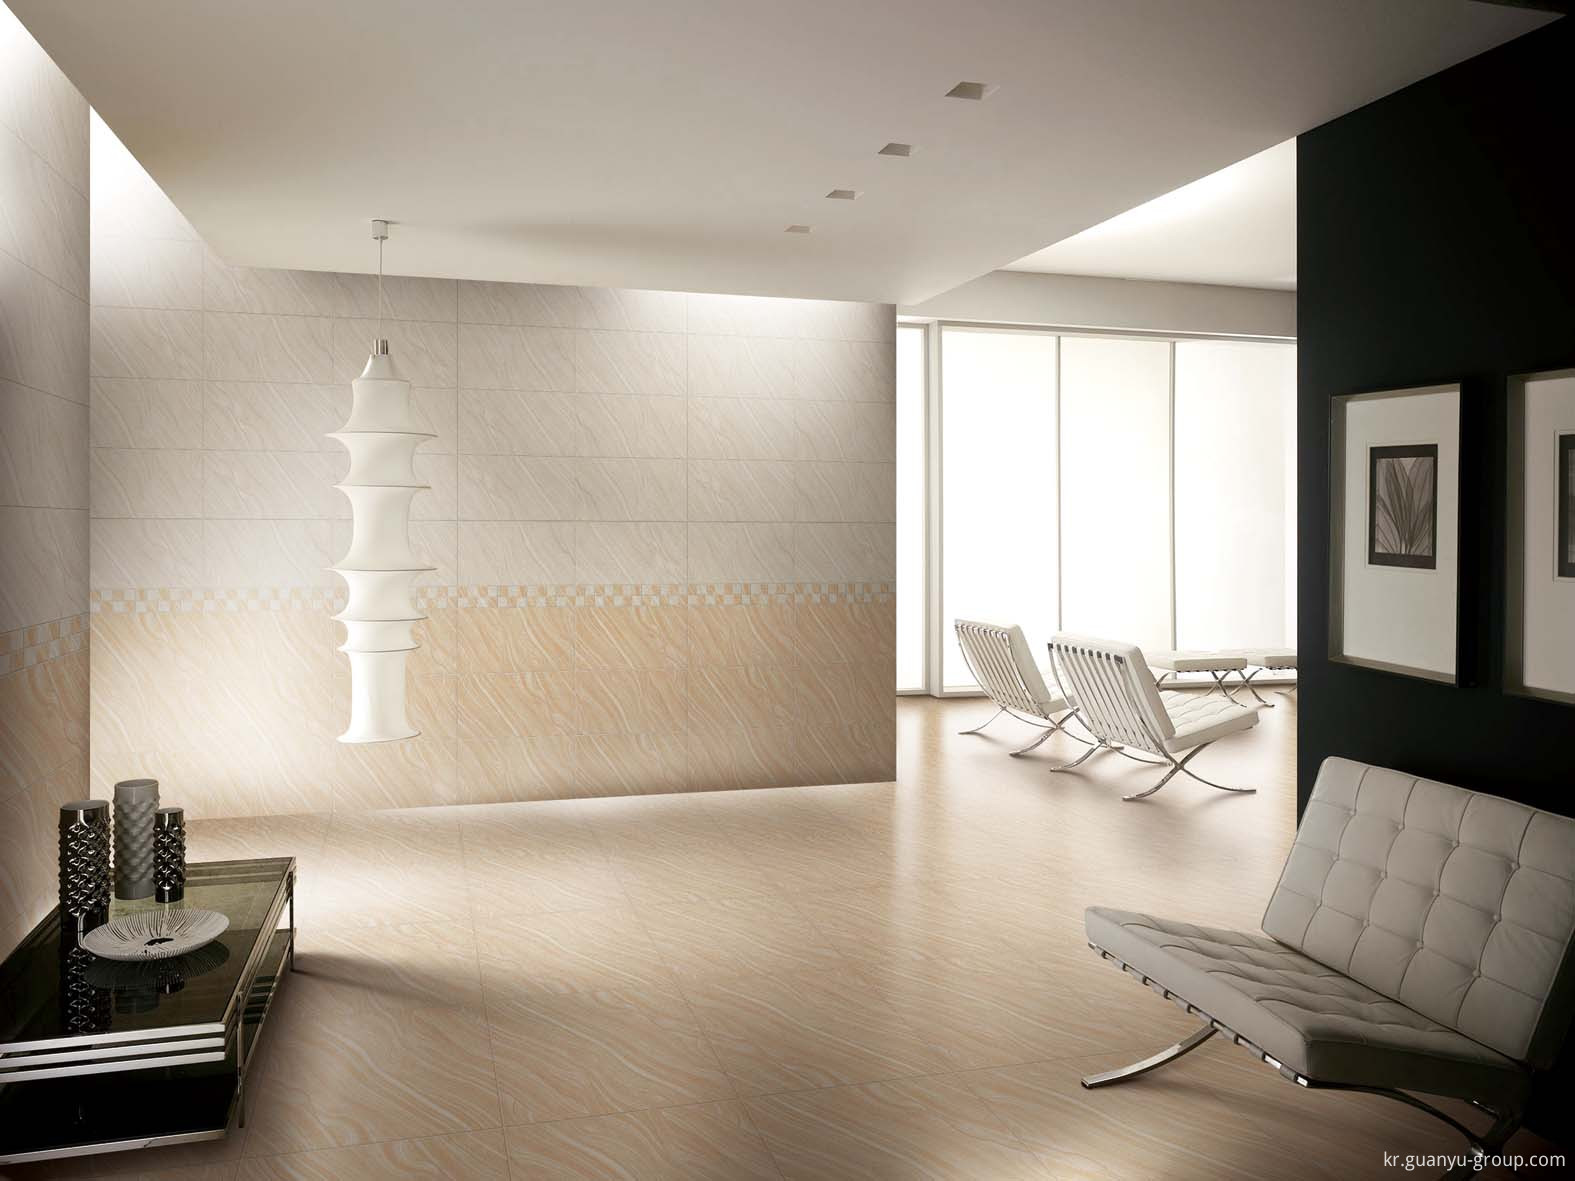 Beige Lappato Finished Porcelain Tile